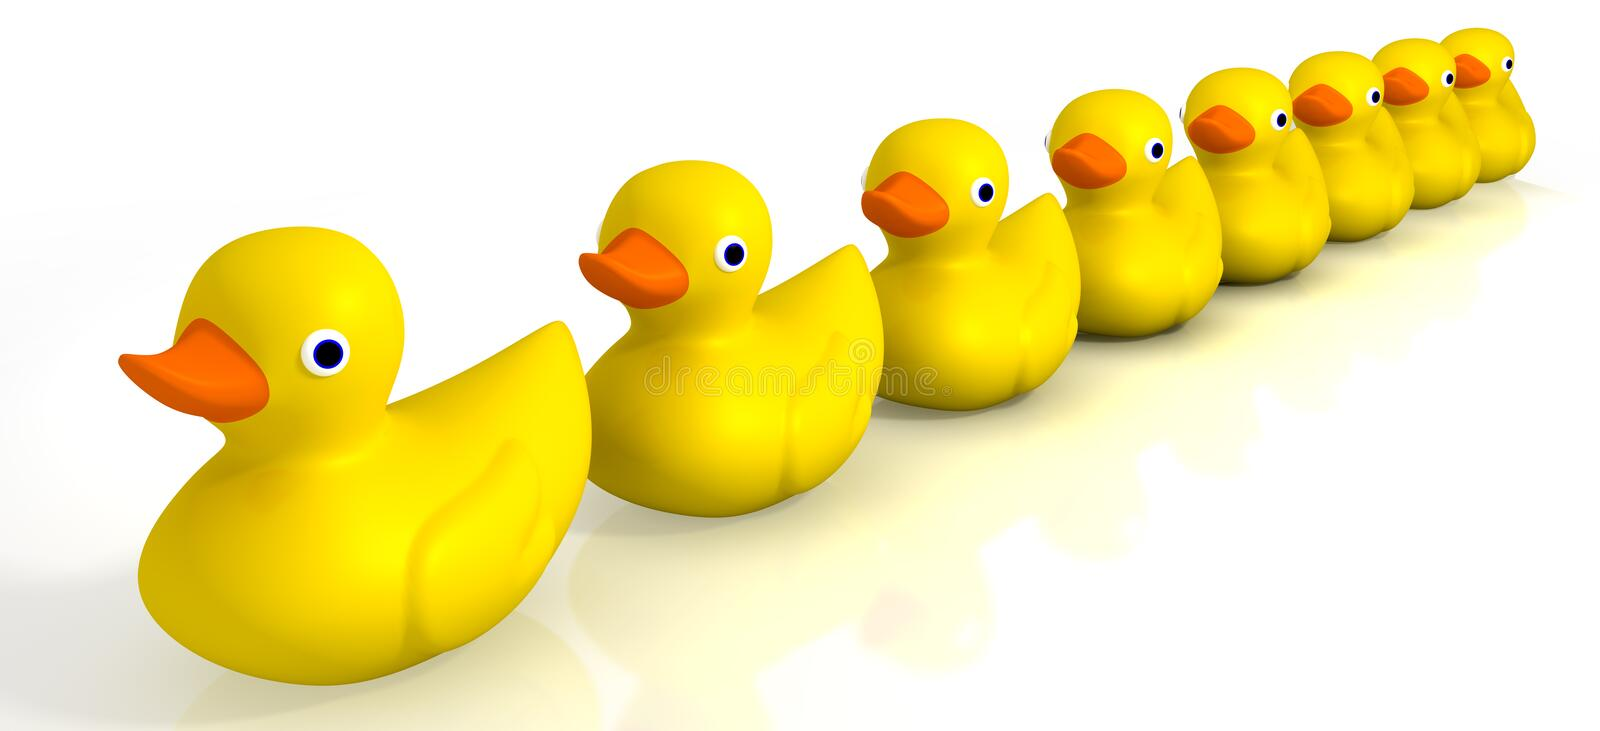 Your Toy Rubber Ducks In A Row stock illustration